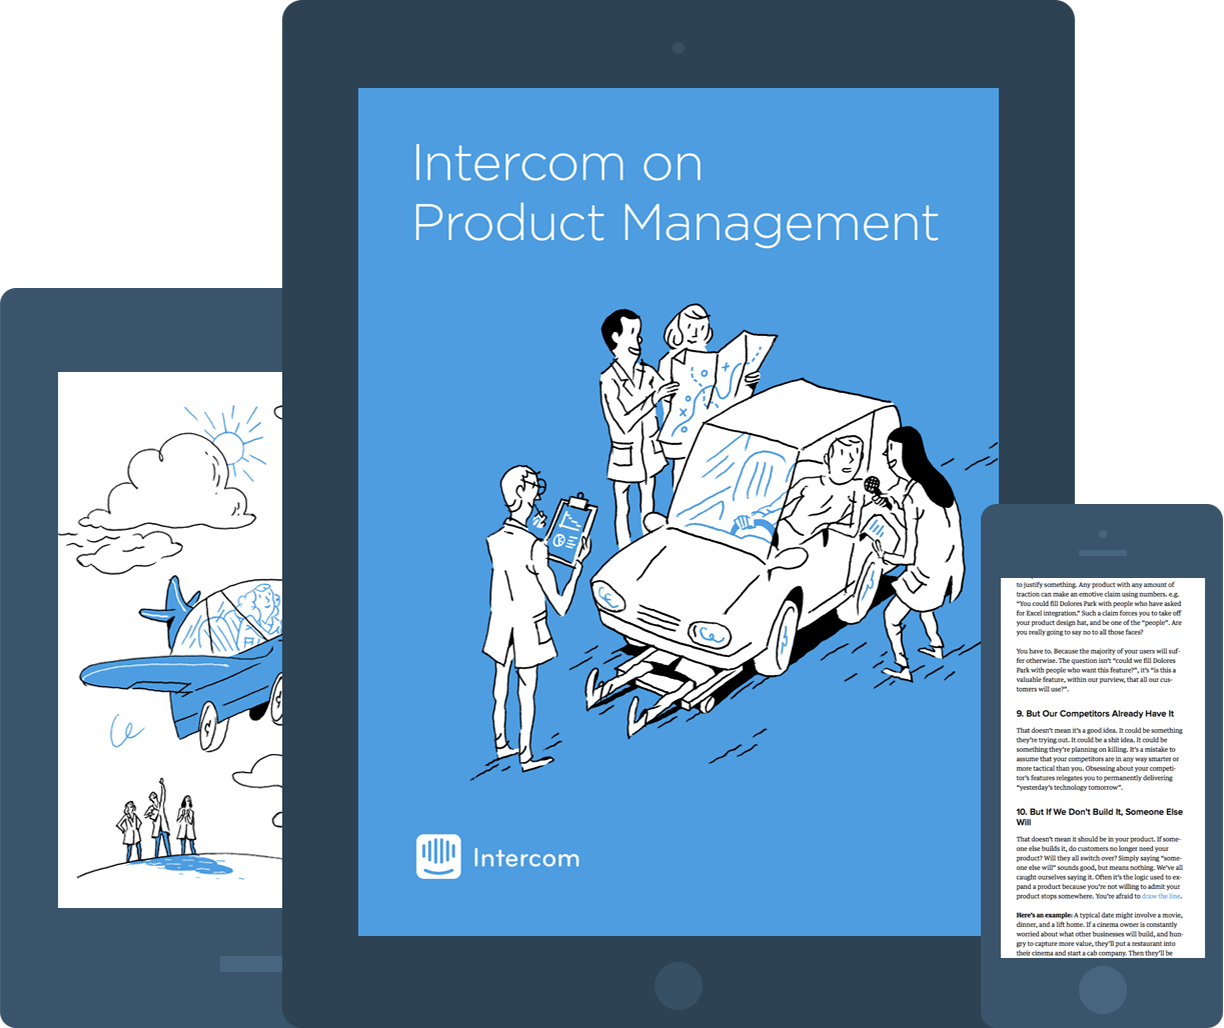 Intercom on Product Management